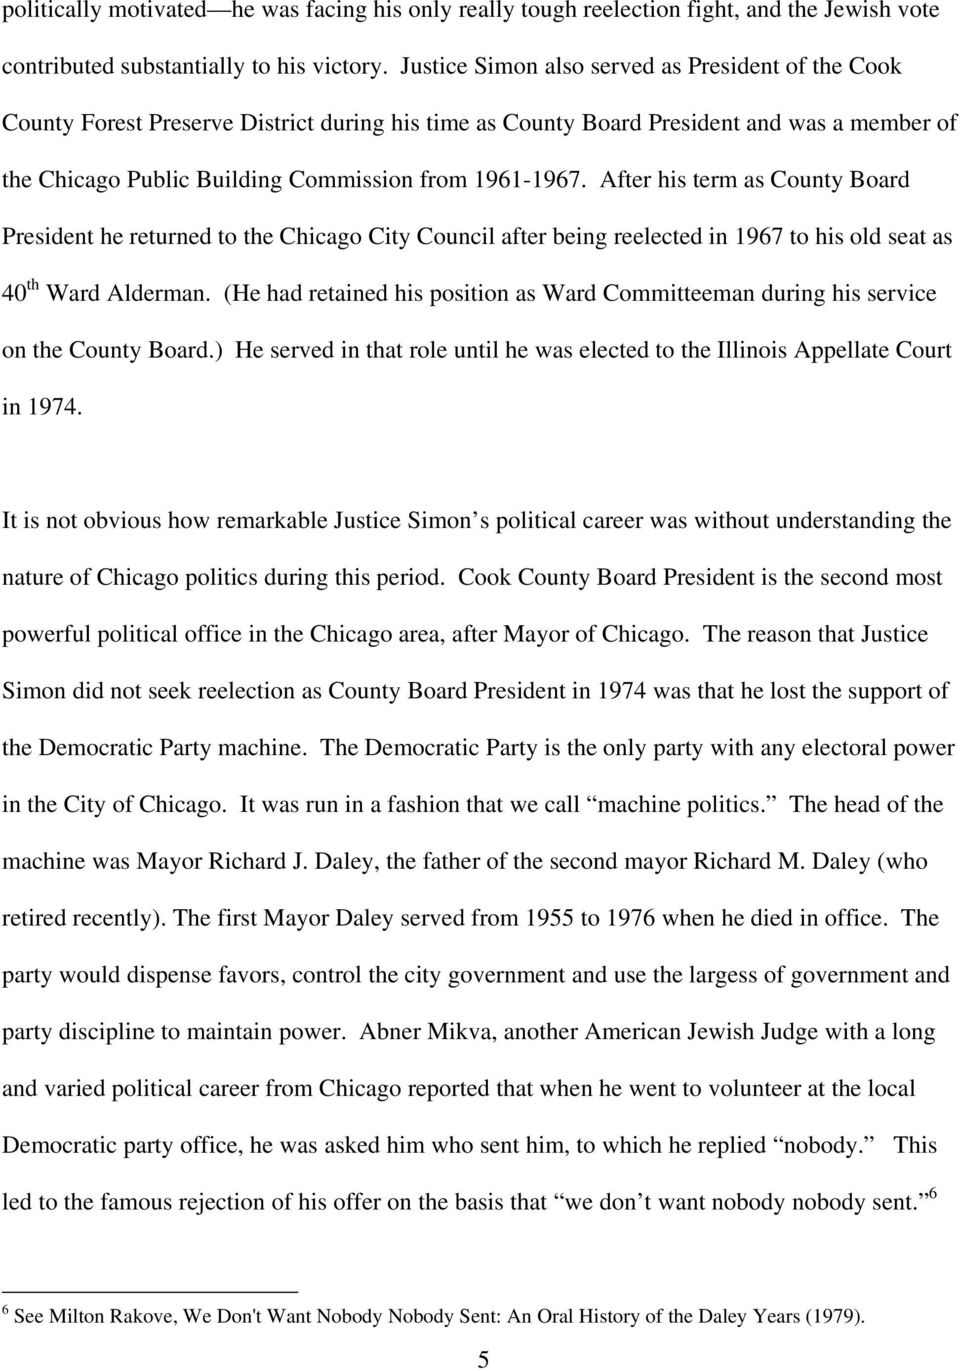 After his term as County Board President he returned to the Chicago City Council after being reelected in 1967 to his old seat as 40 th Ward Alderman.